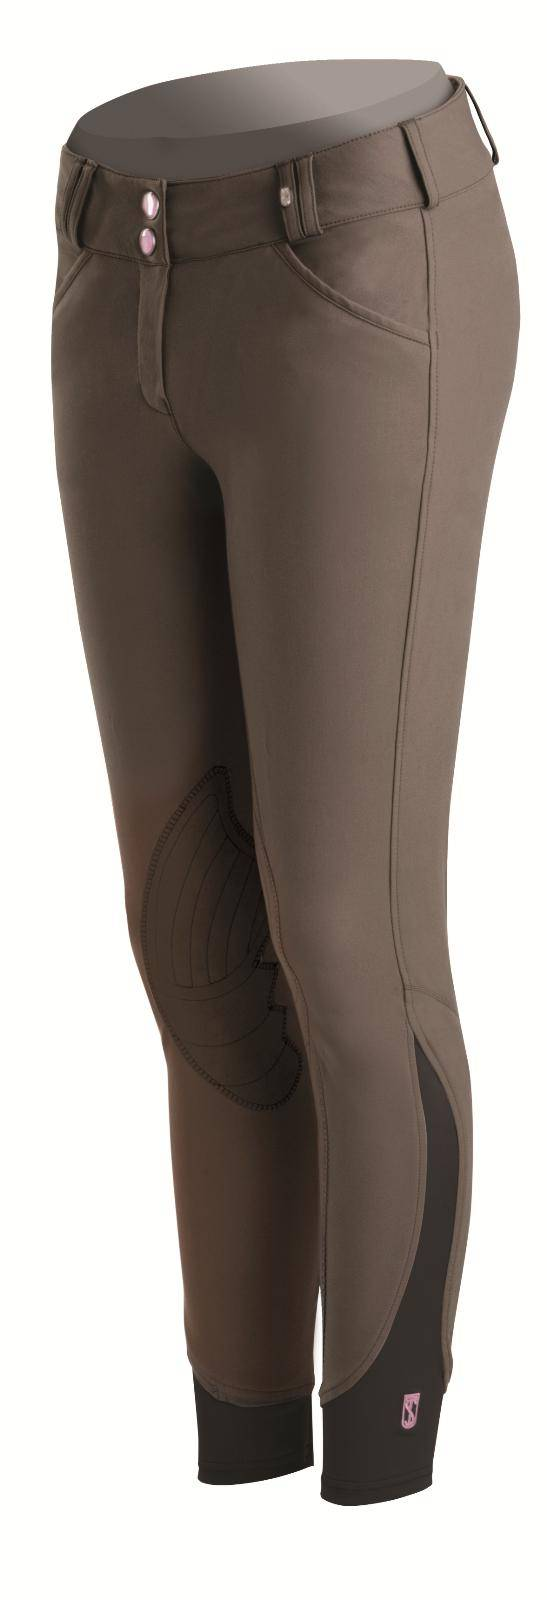 Outlet - Tredstep Rosa Knee Patch Breeches - Ladies, 32 Regular, Truffle